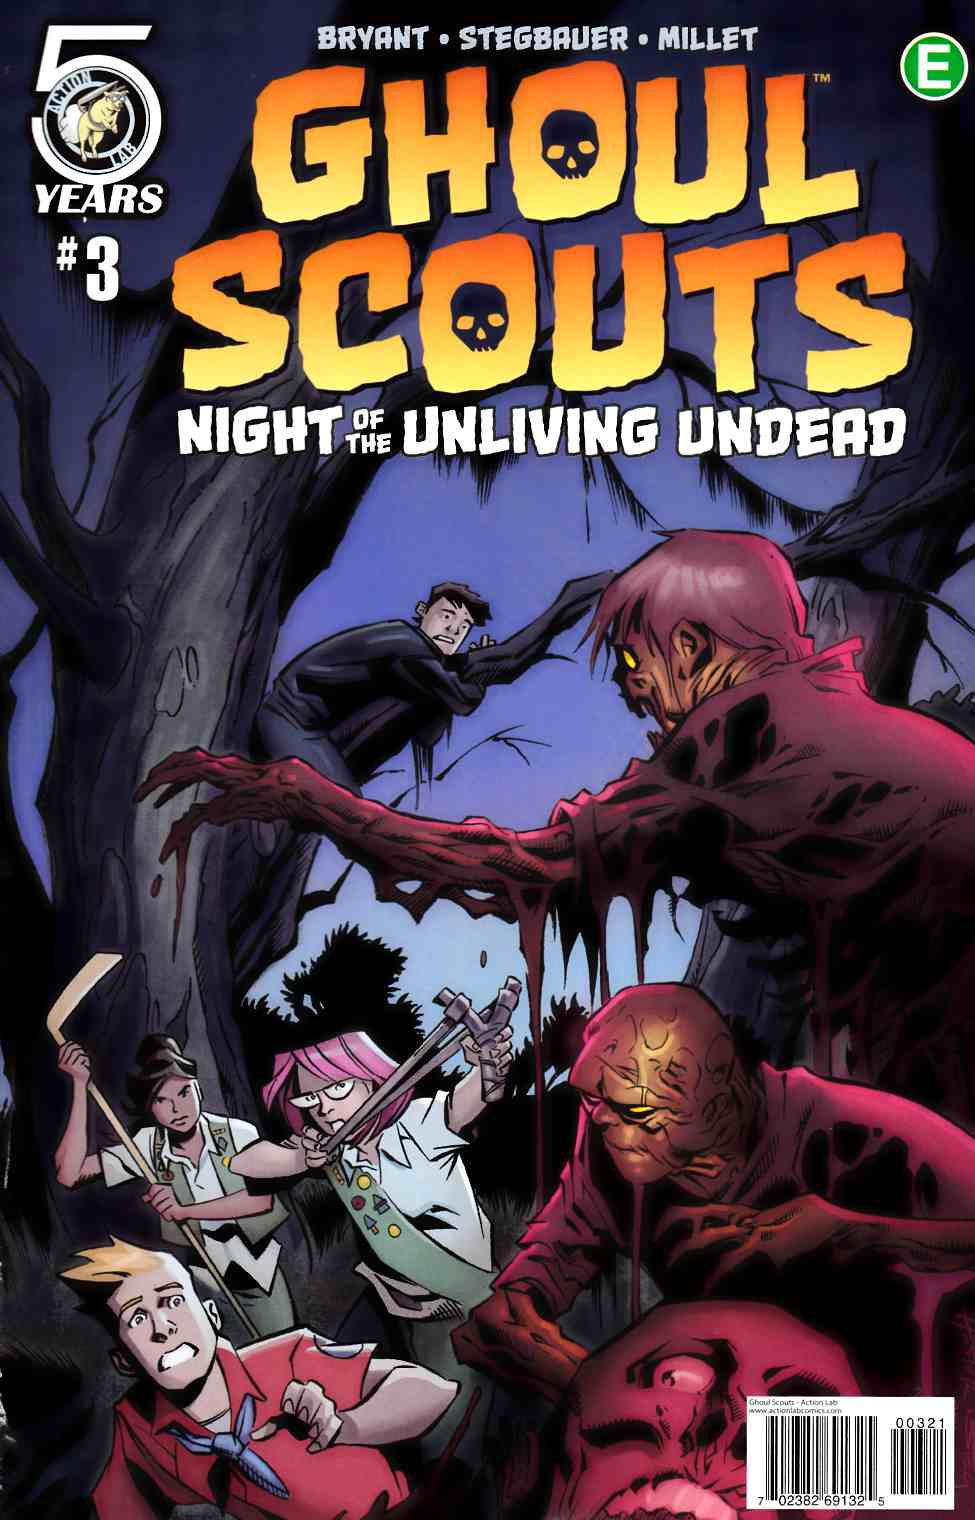 Ghoul Scouts Night of the Unliving Undead #3 Cover B [Action Lab Comic] THUMBNAIL